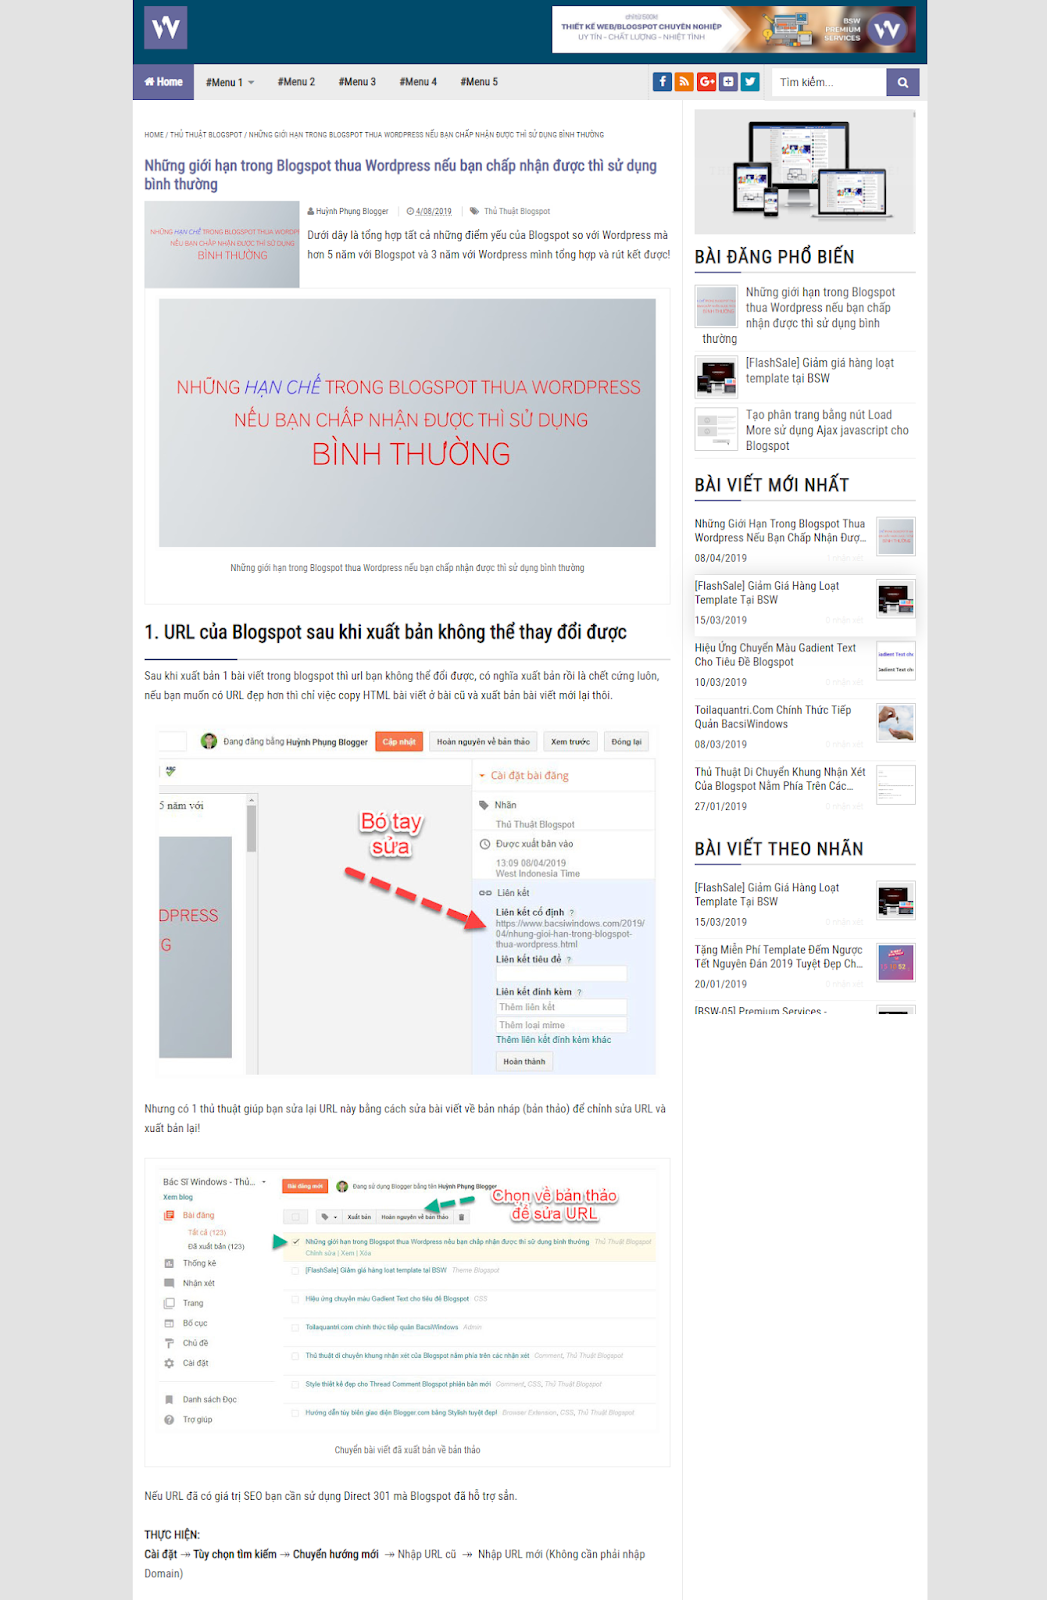 Chia sẻ template blogspot BSW Blogging Fastest Free - Ảnh 2